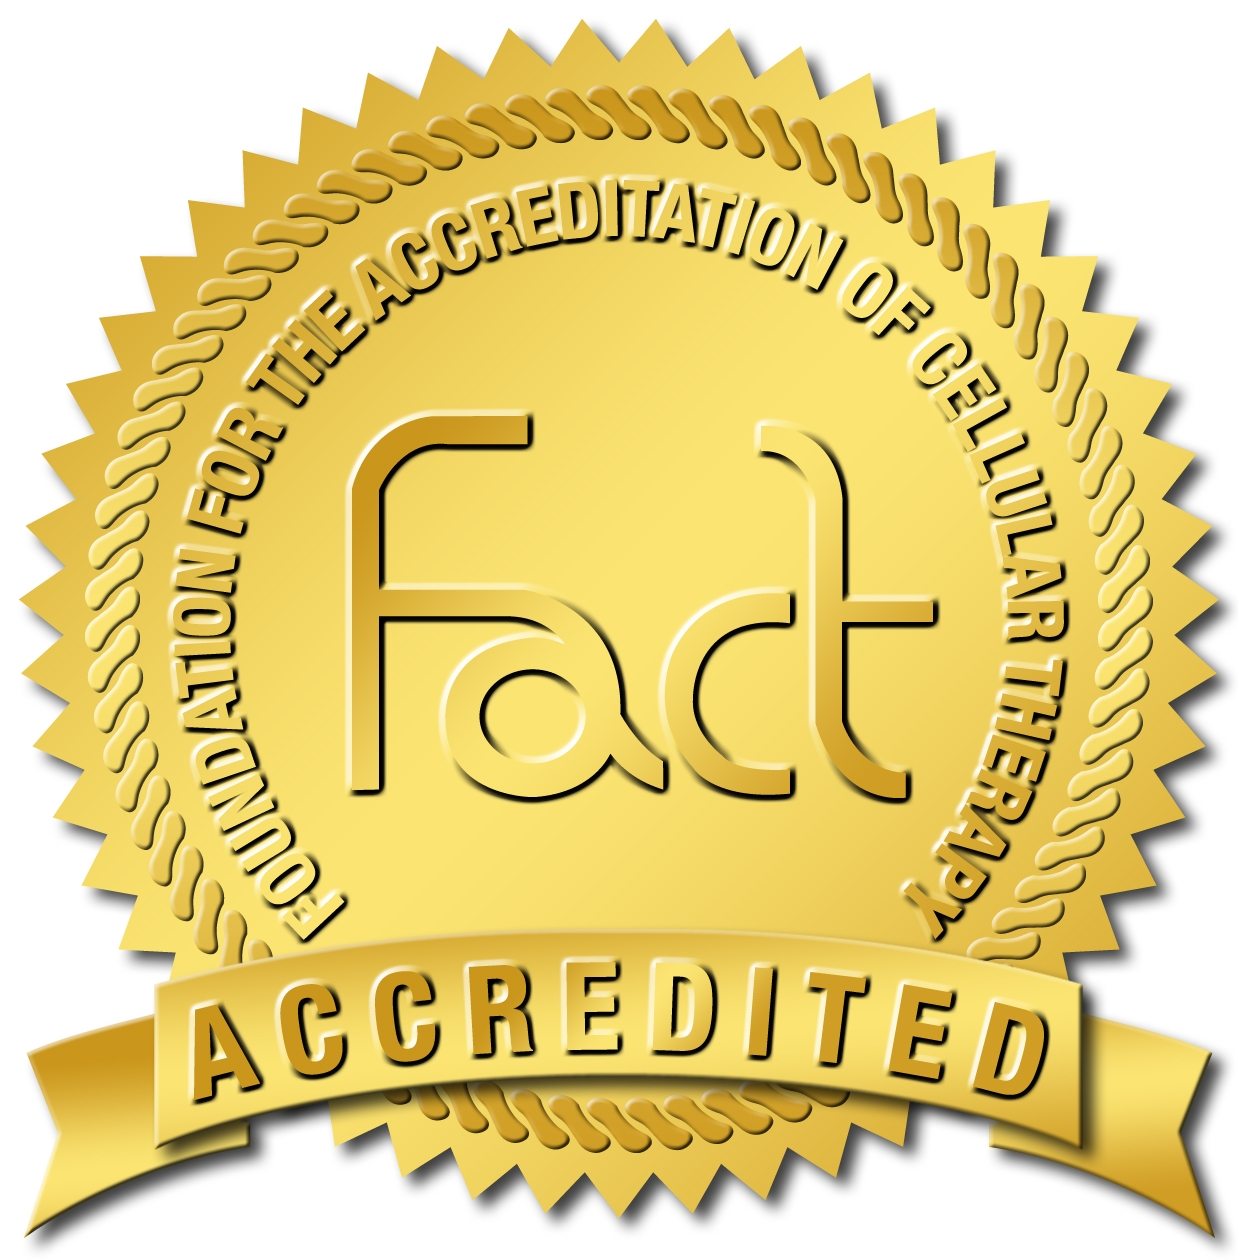 Billings Clinic is a FACT Accredited Stem Cell Transplant Center